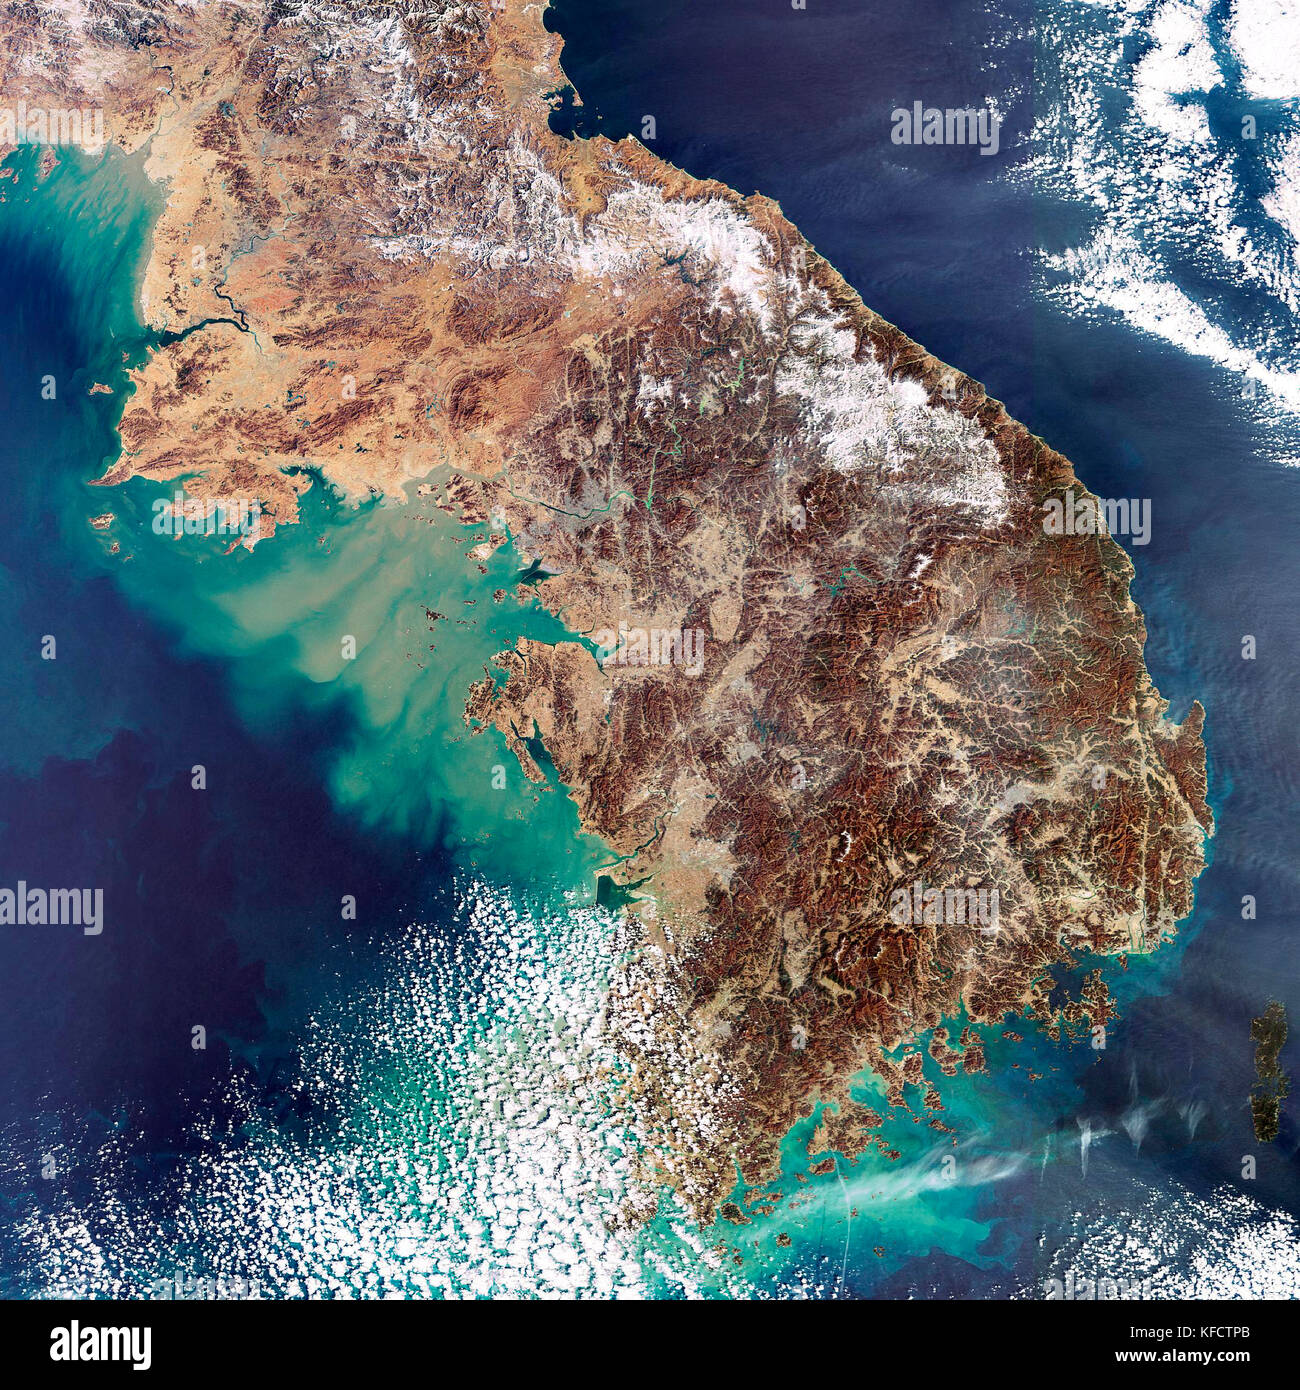 The Korean Peninsula, highlighted in this image acquired on 11 February 2007. - Stock Image